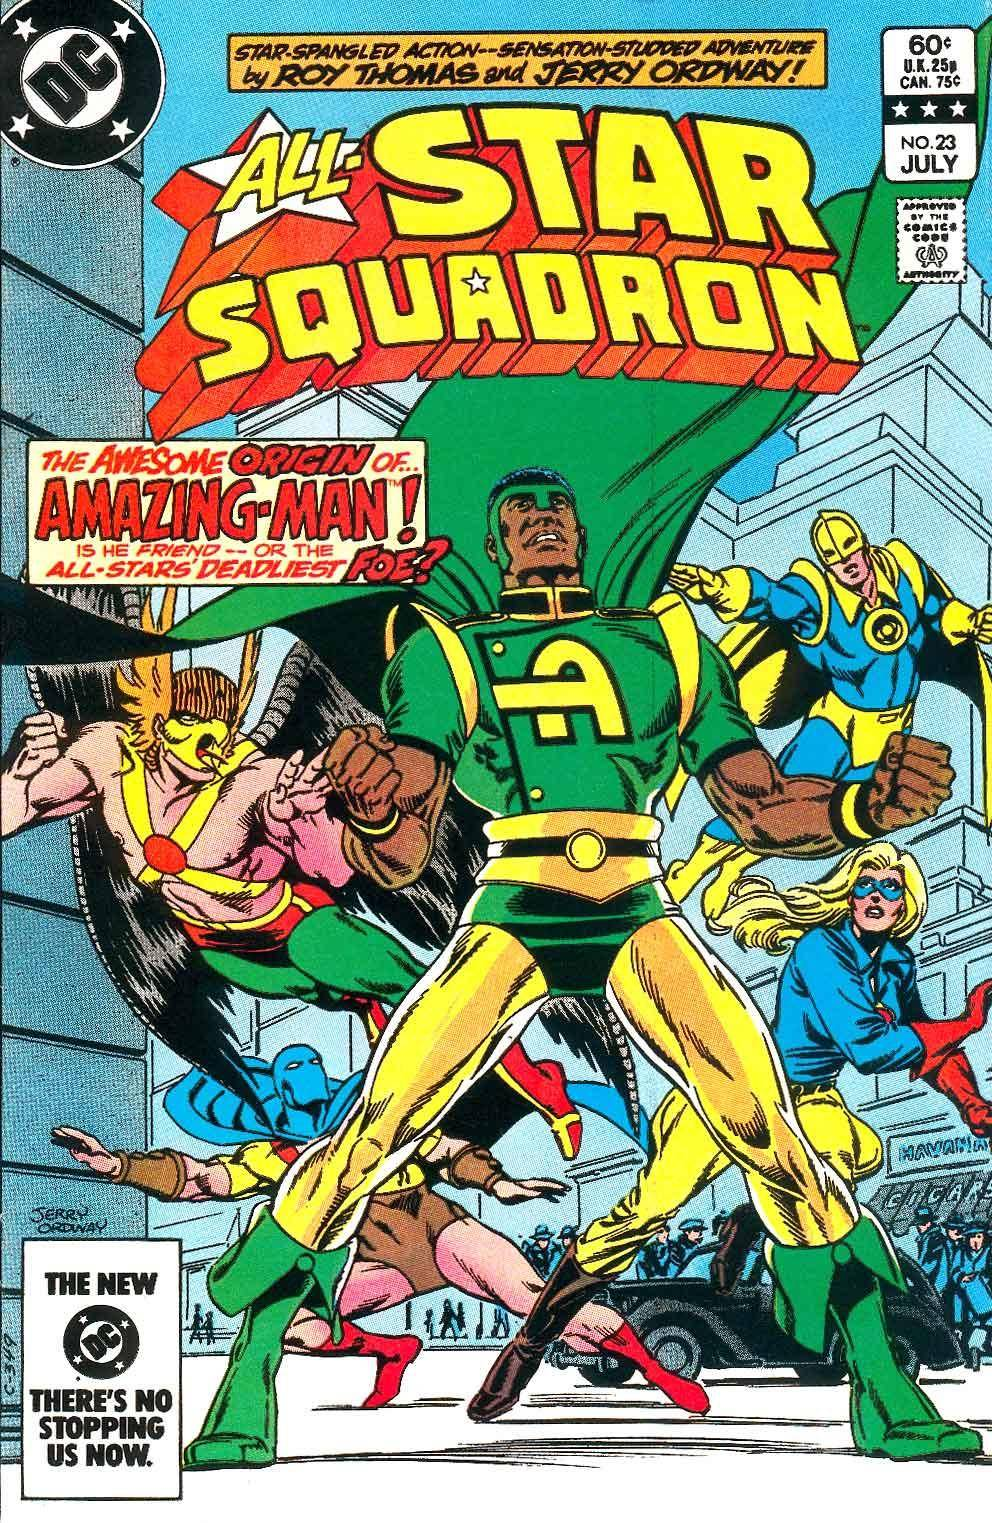 For Spectre99 [28 of 117] All-Star Squadron [1983-07] 023 cbz